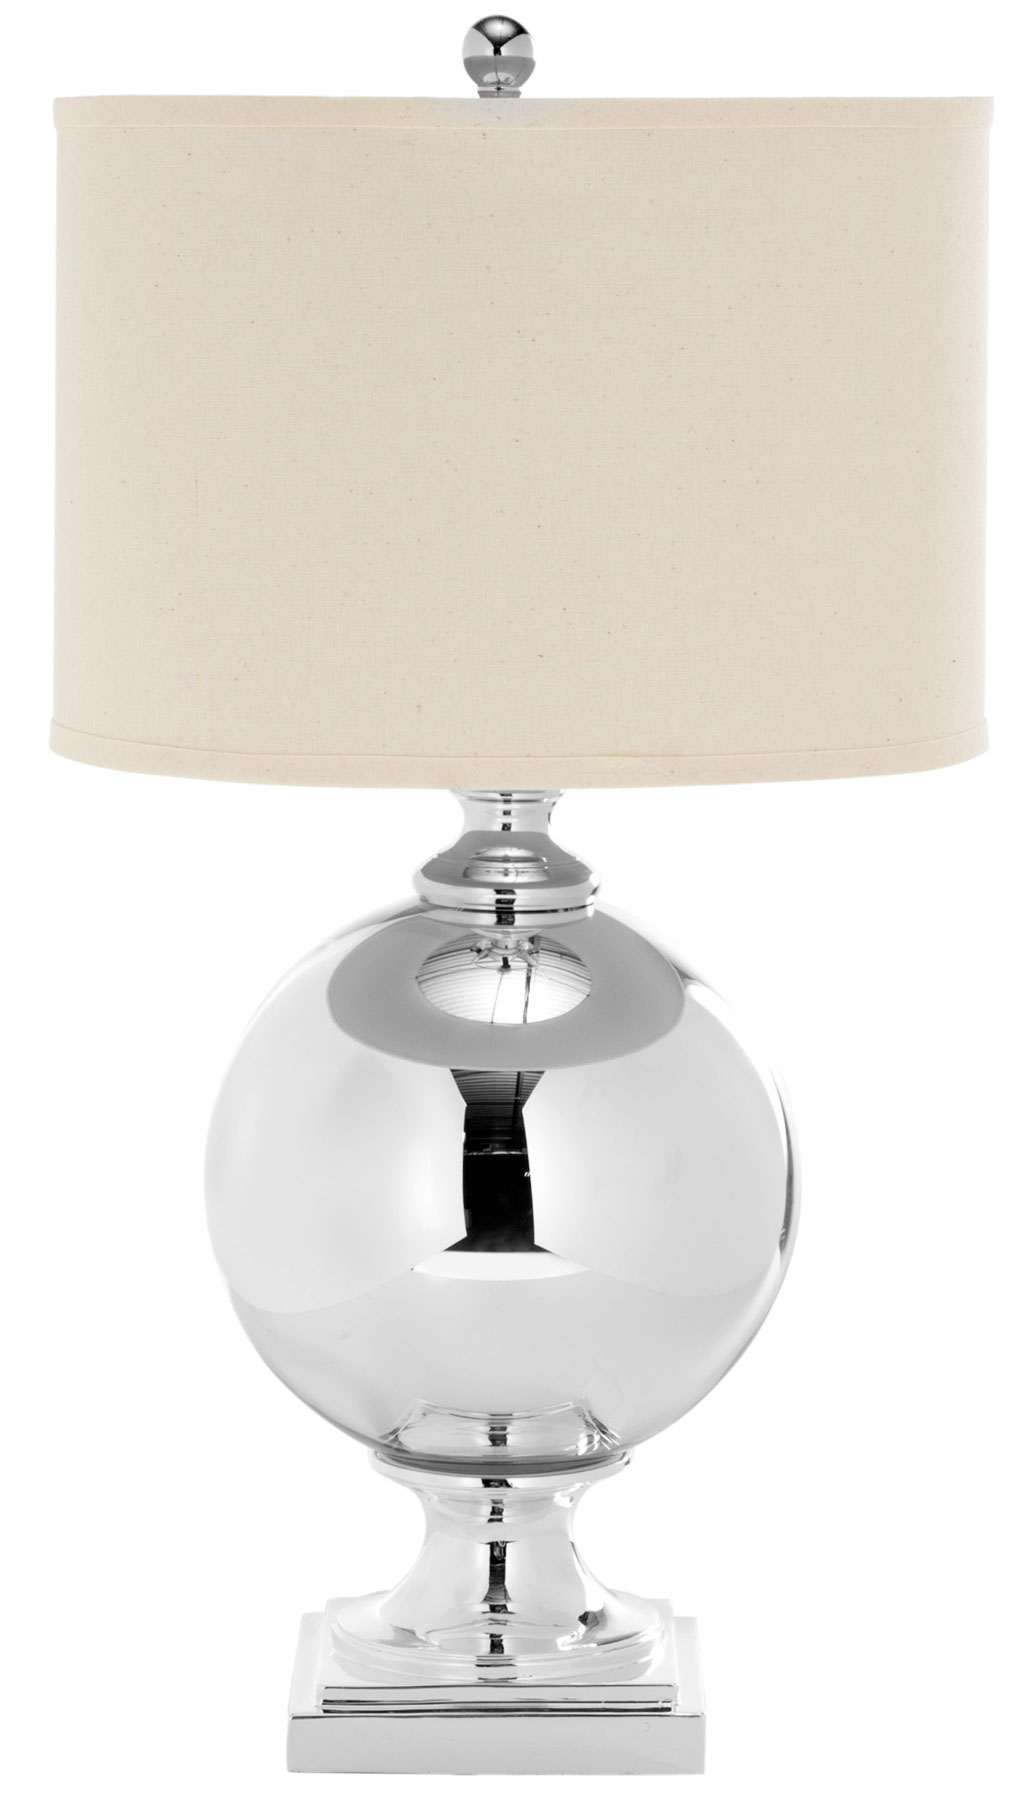 Lit4053a Table Lamps Lighting By Safavieh